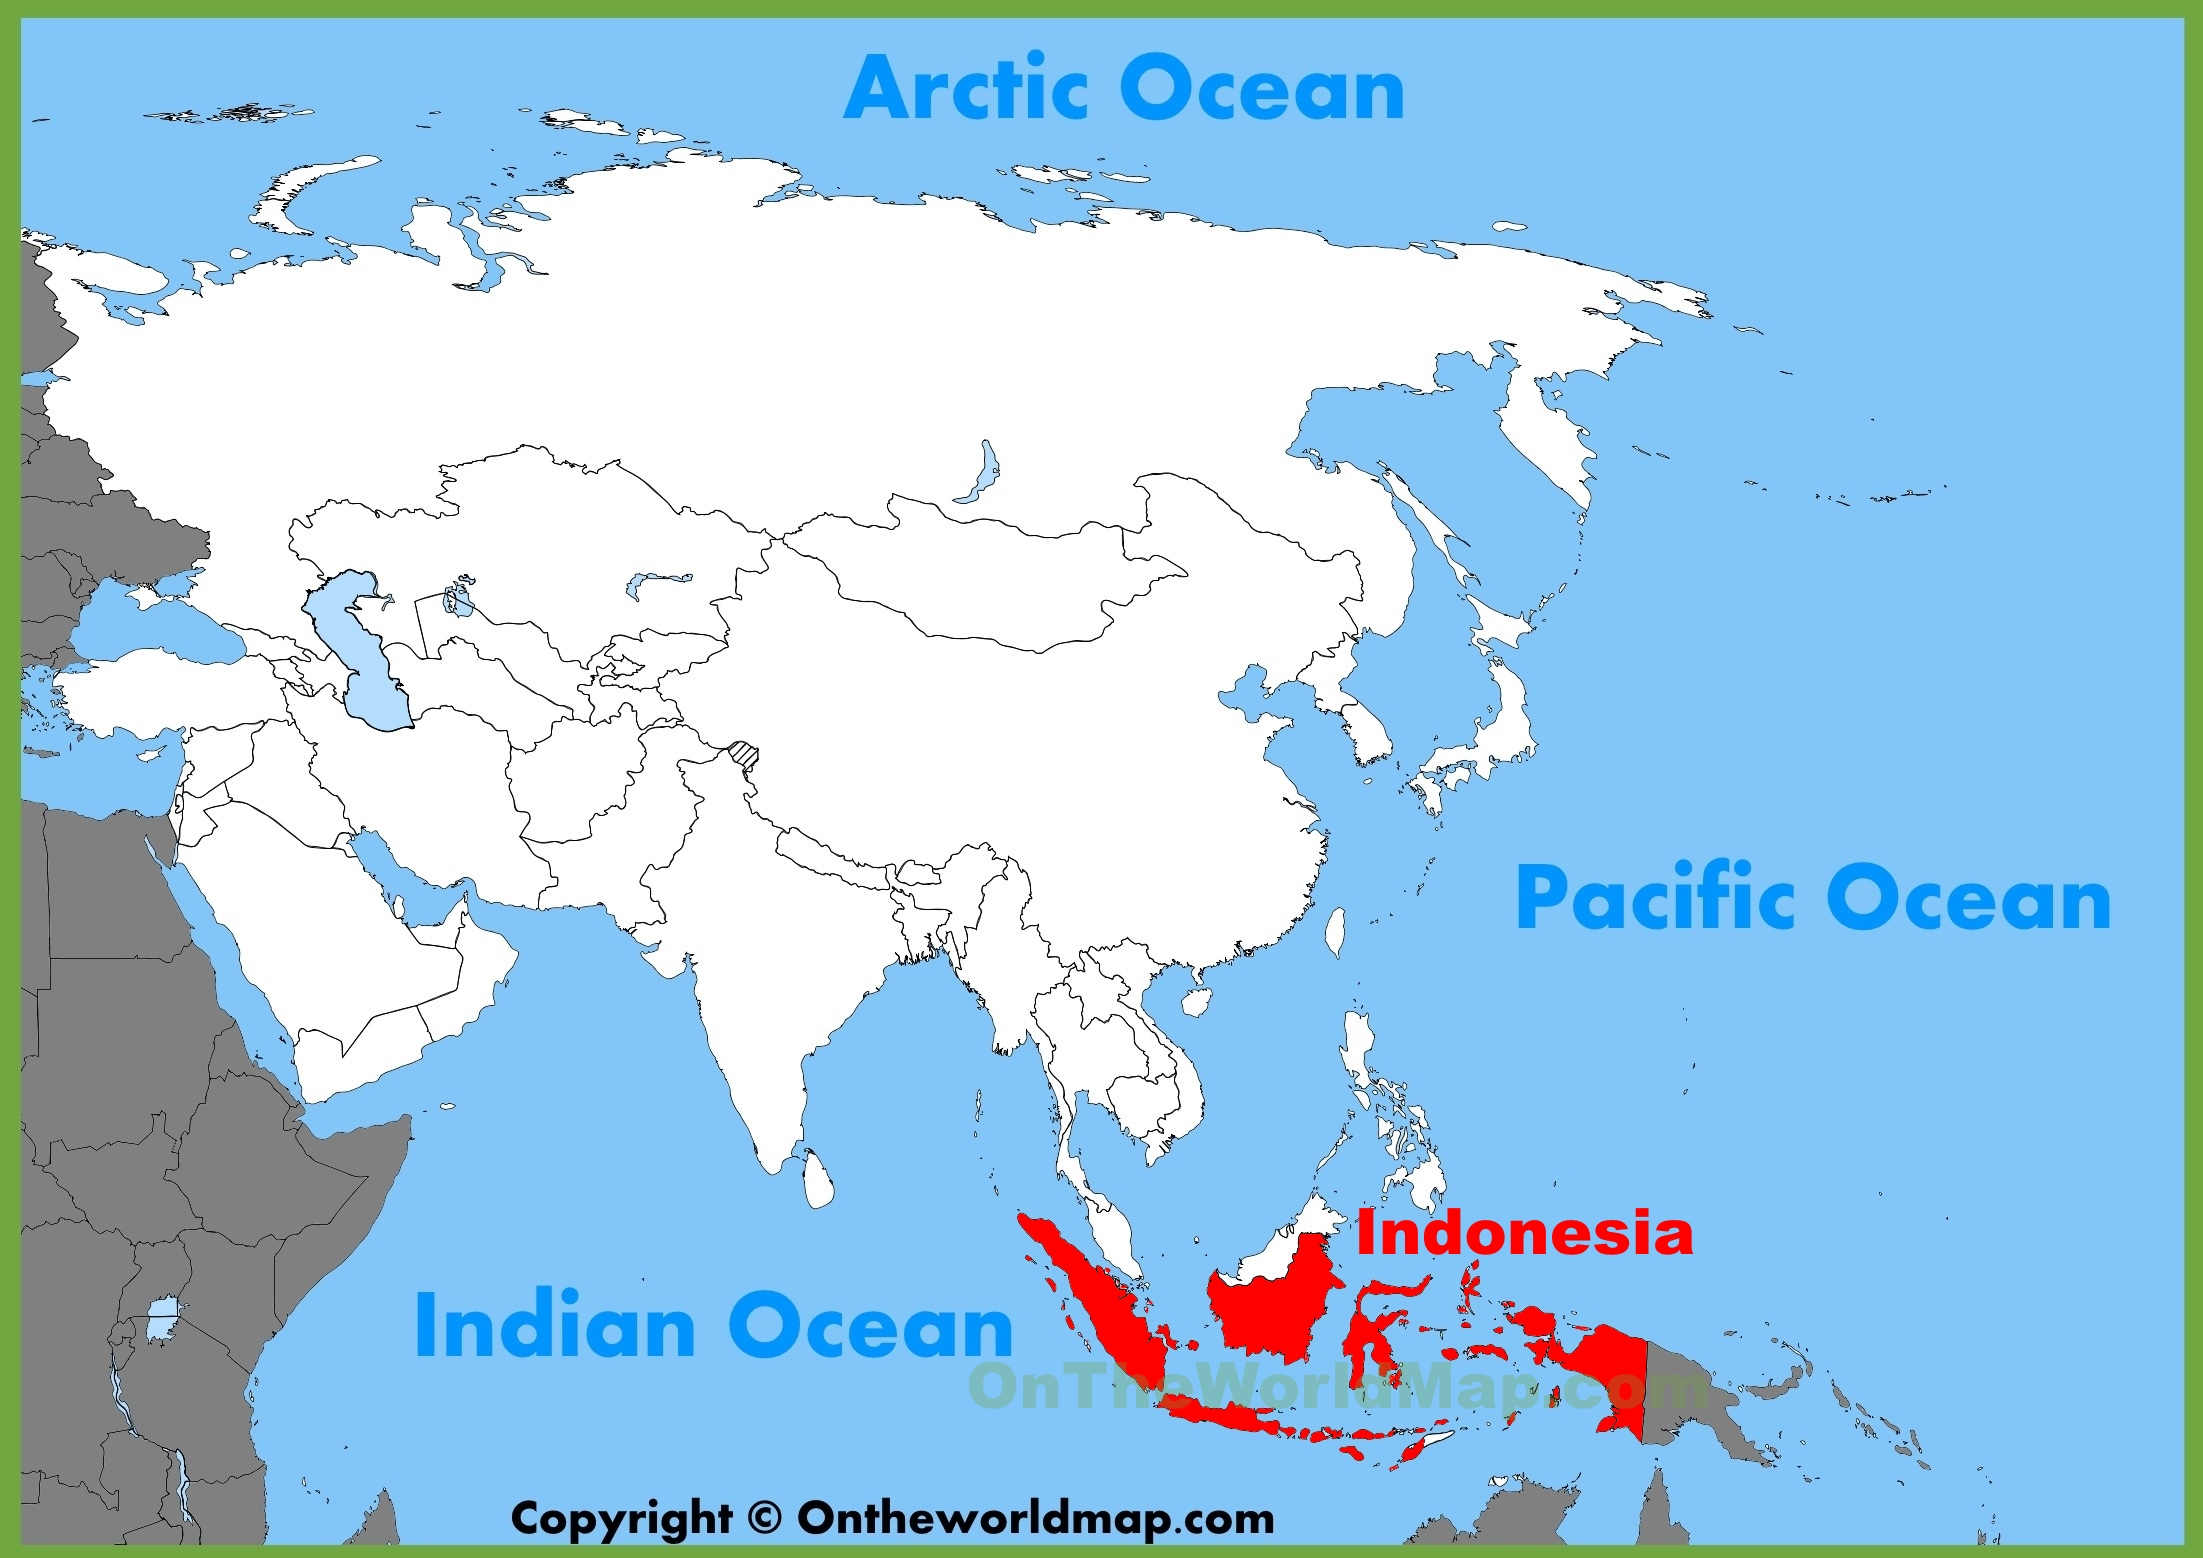 Indonesia On The Map Indonesia location on the Asia map